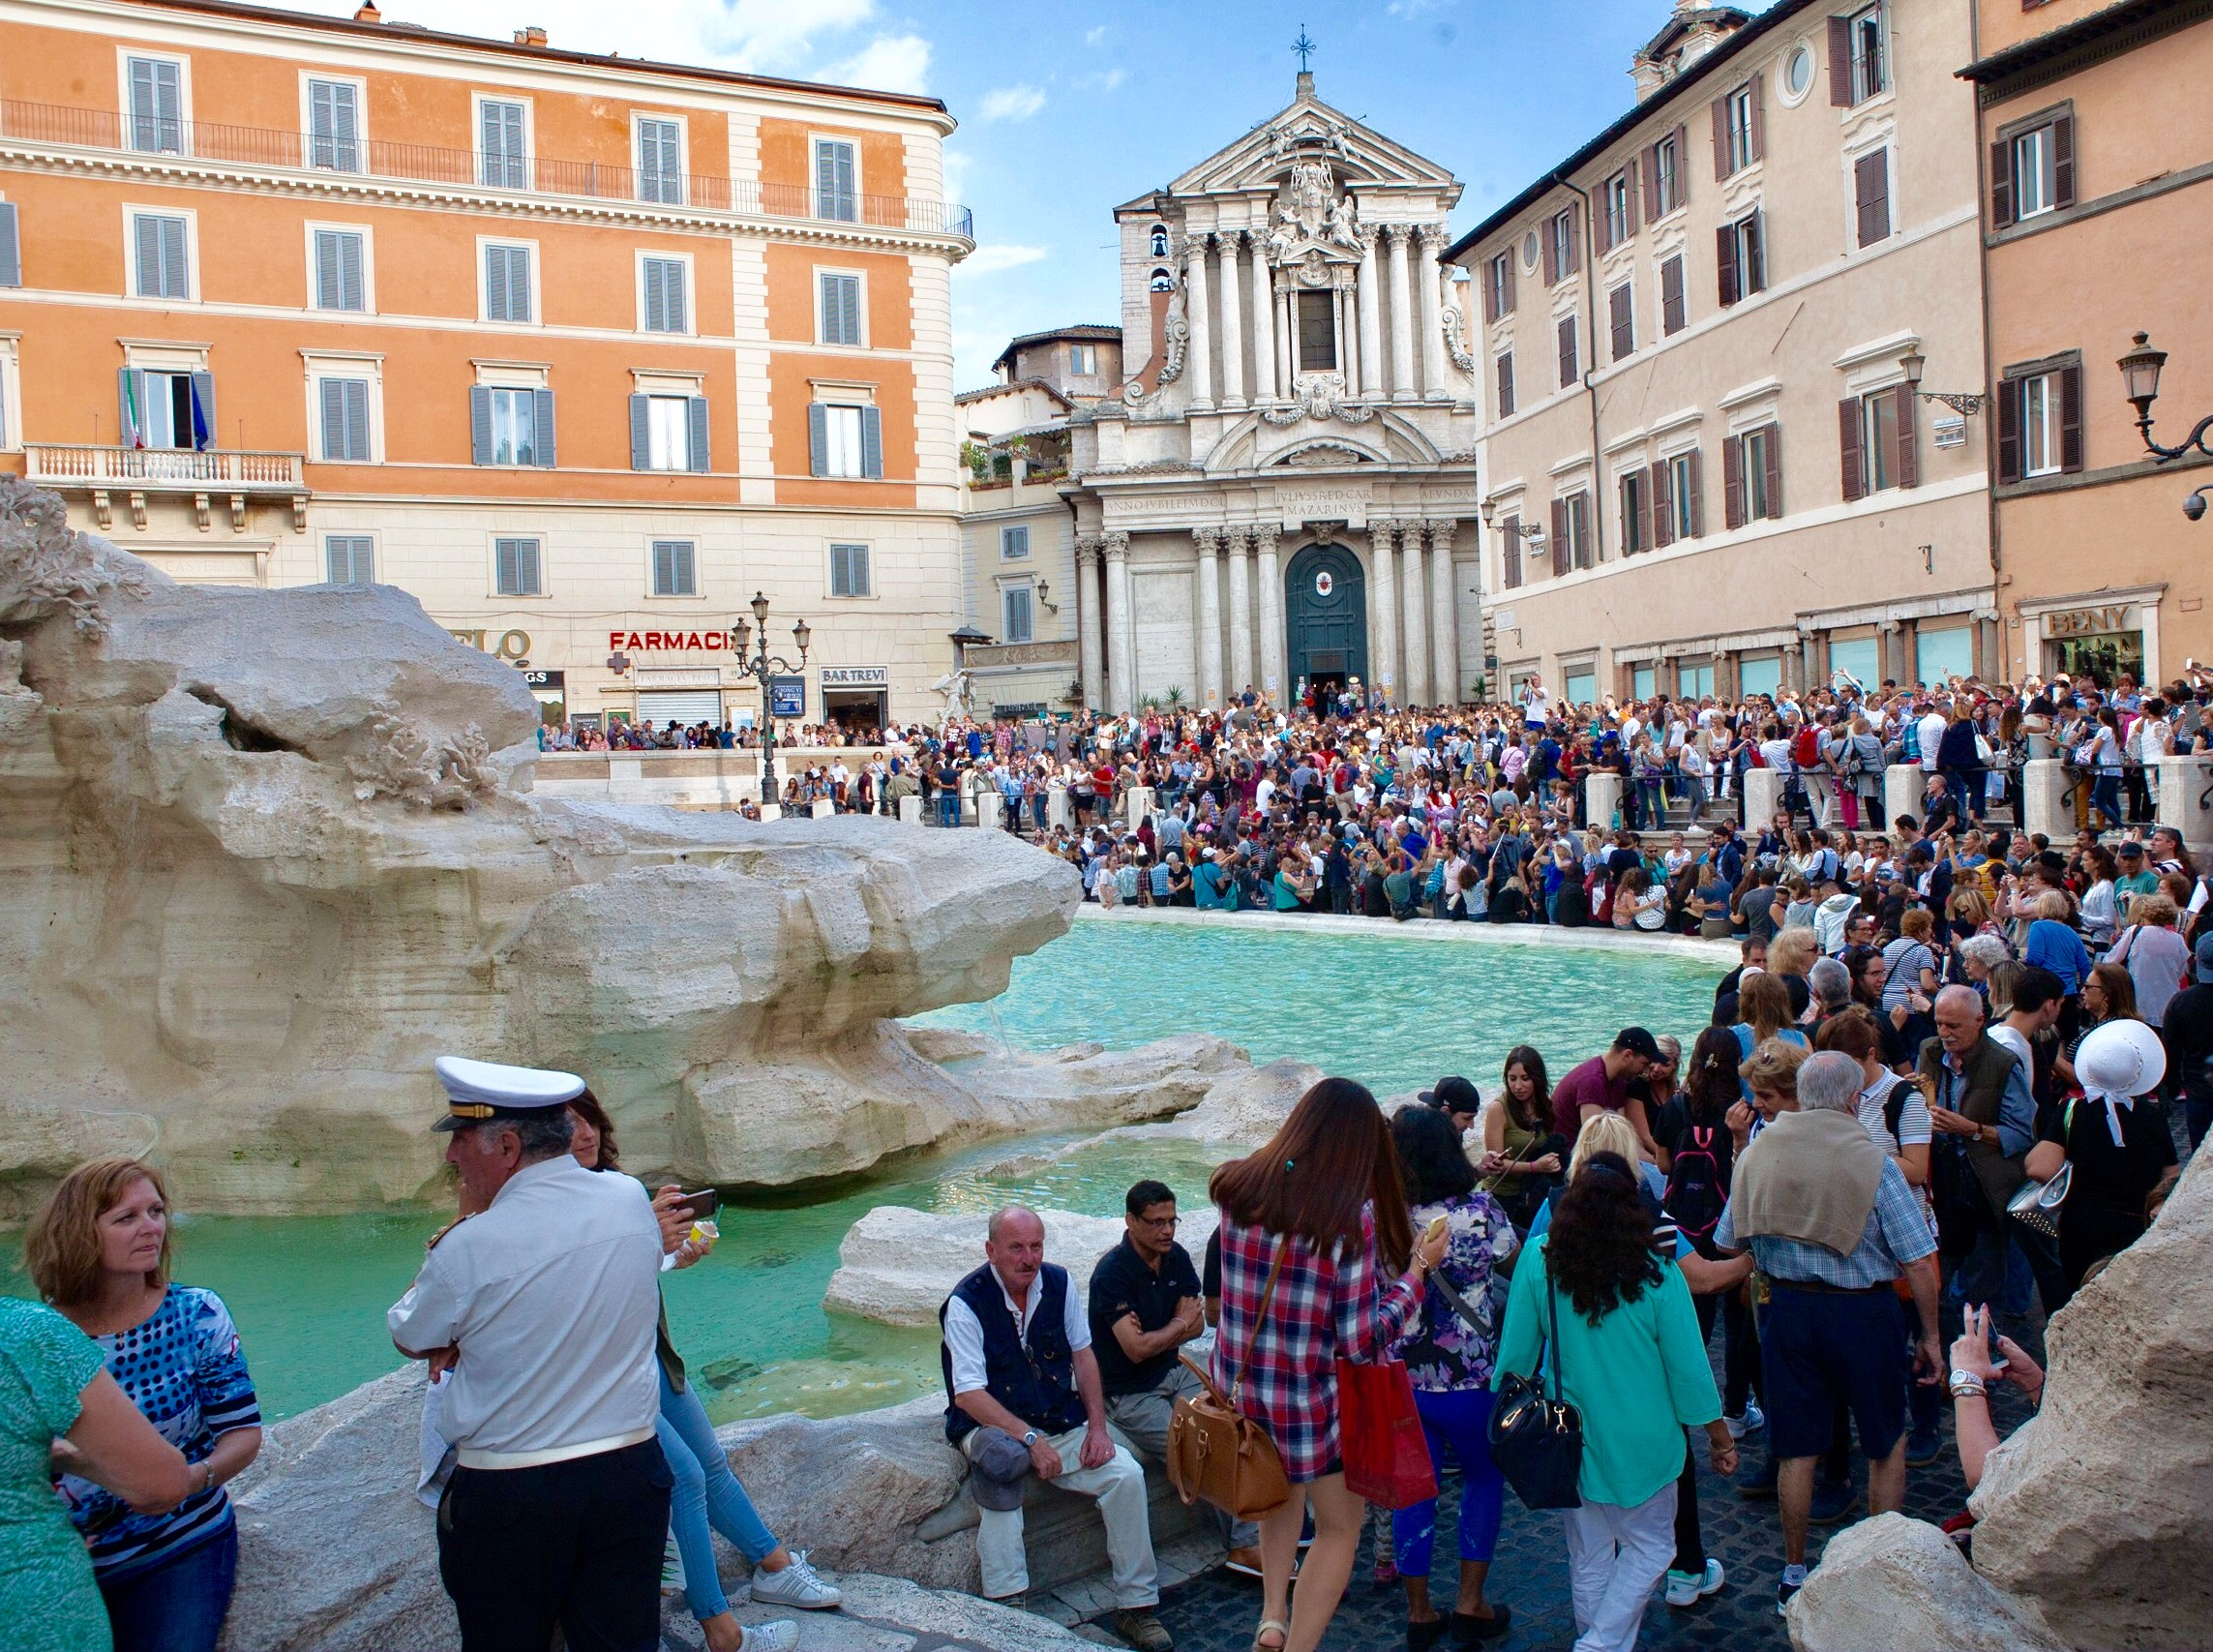 The Trevi crowds